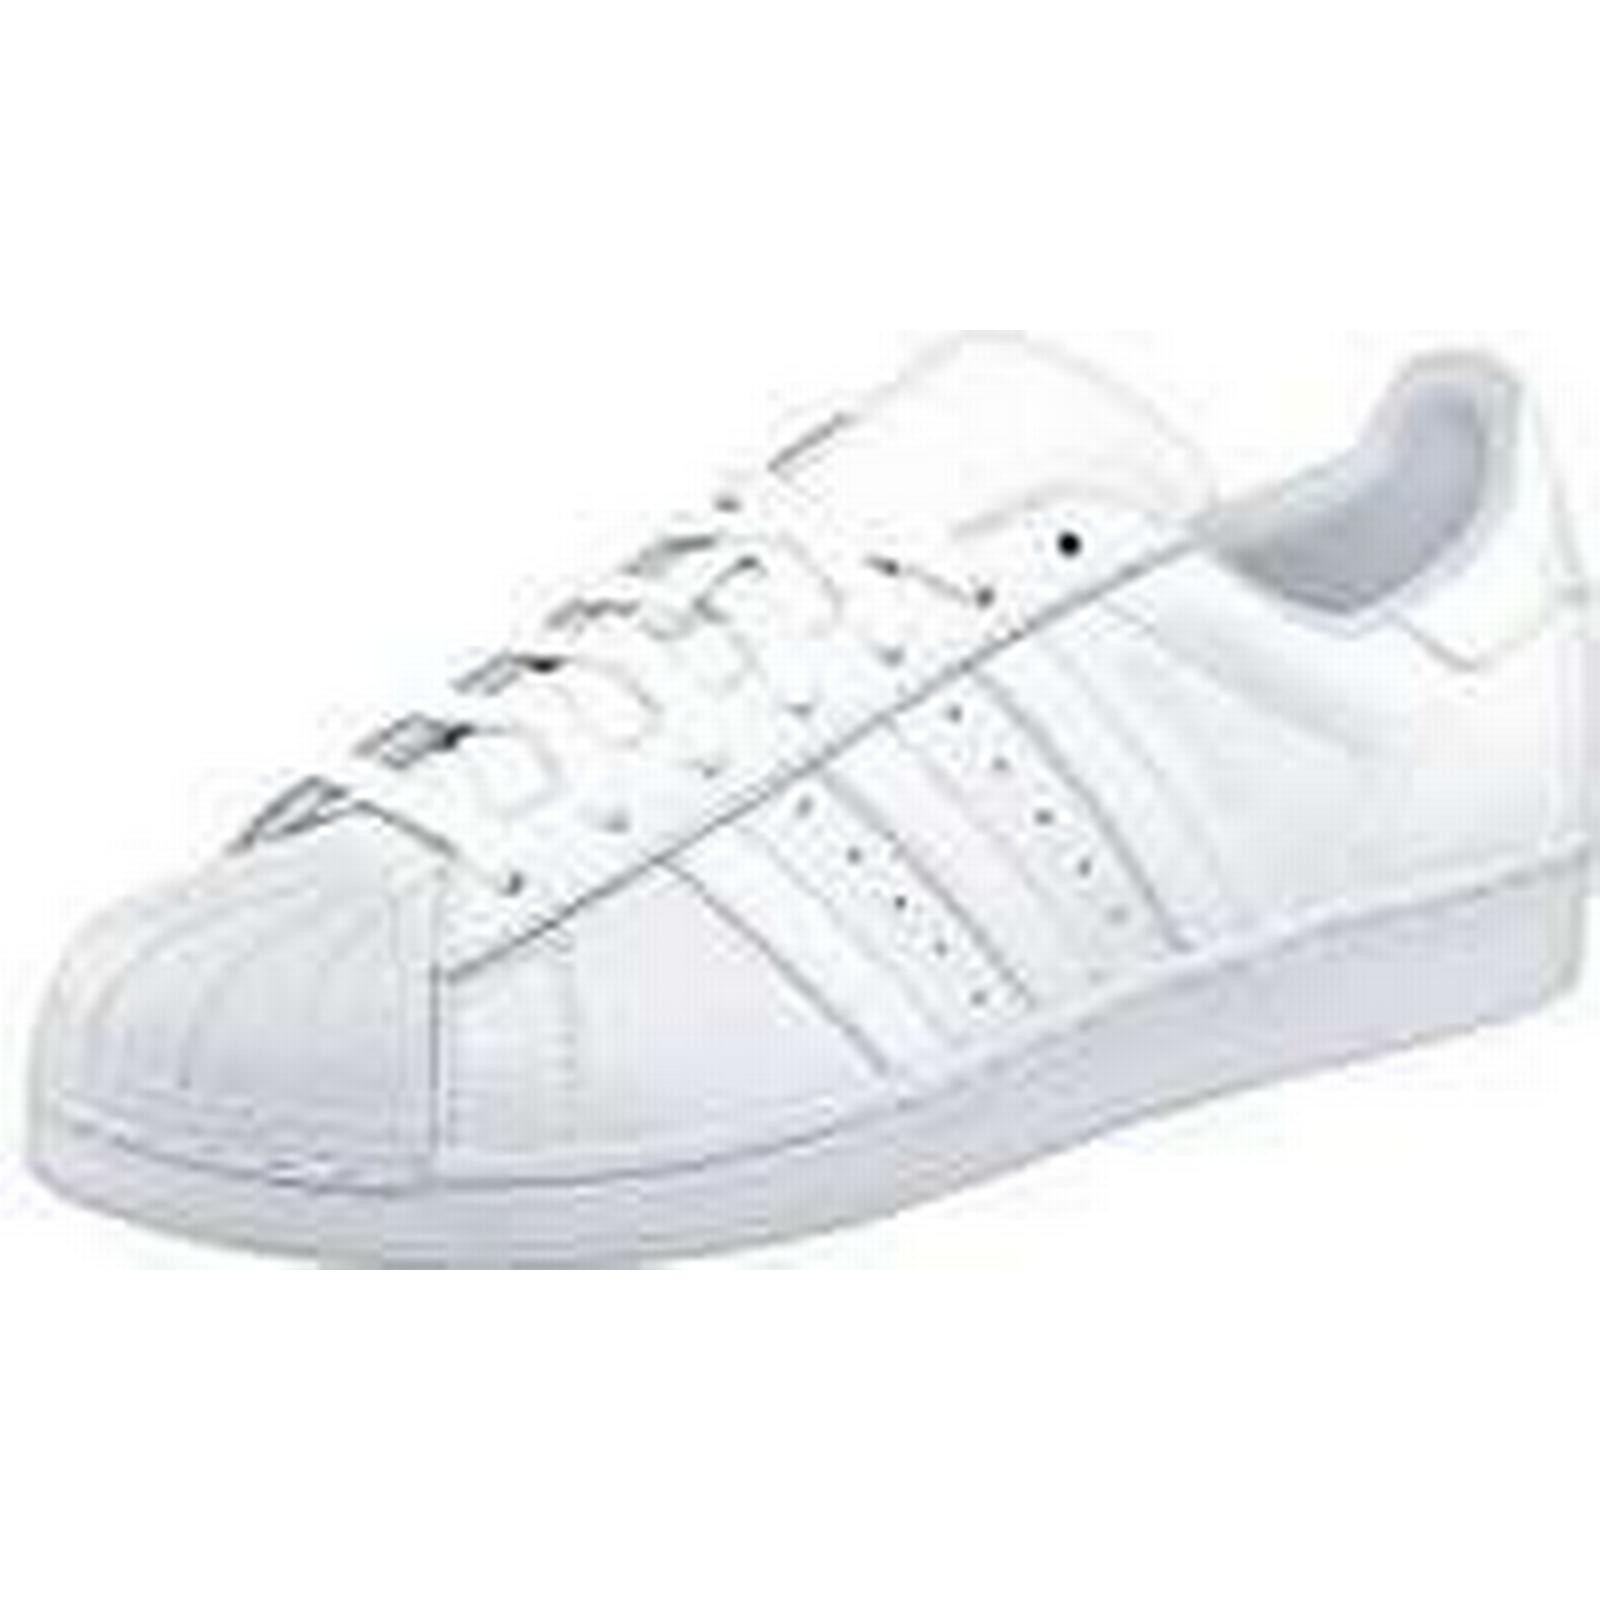 Adidas Originals White 'Superstar' Trainers adidas by adidas Trainers Originals c52253